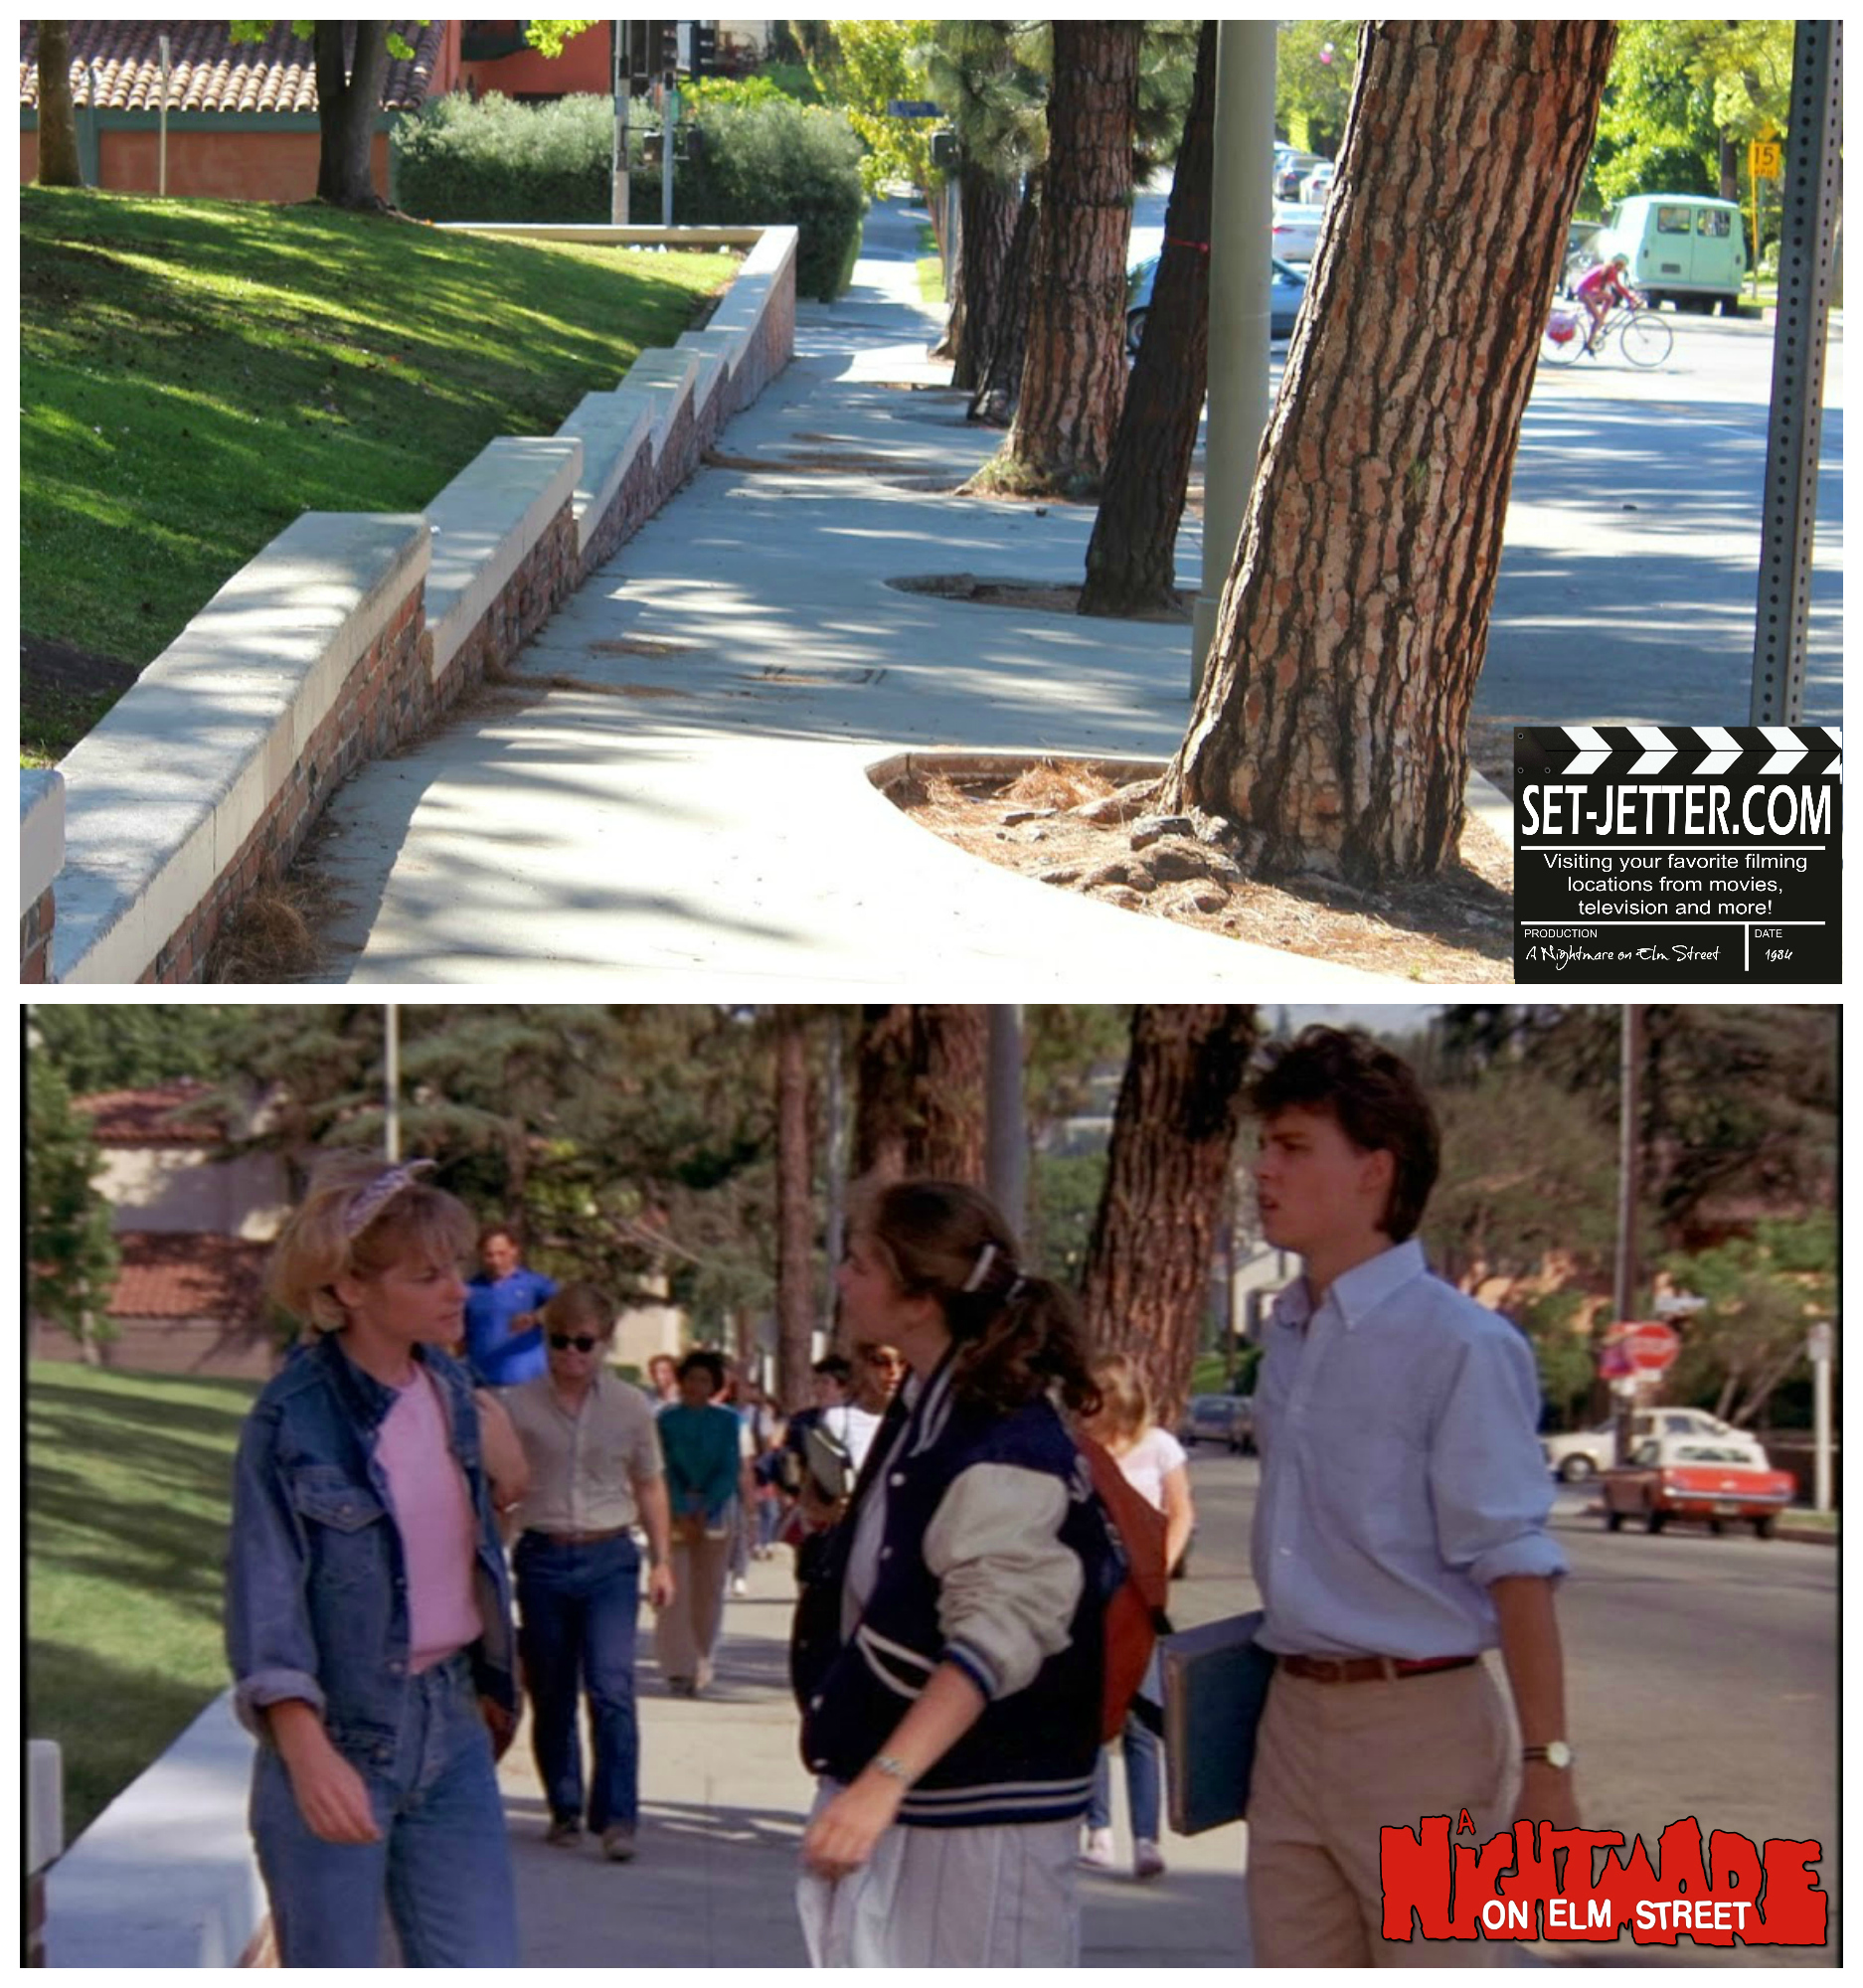 Nightmare on Elm Street comparison 03.jpg